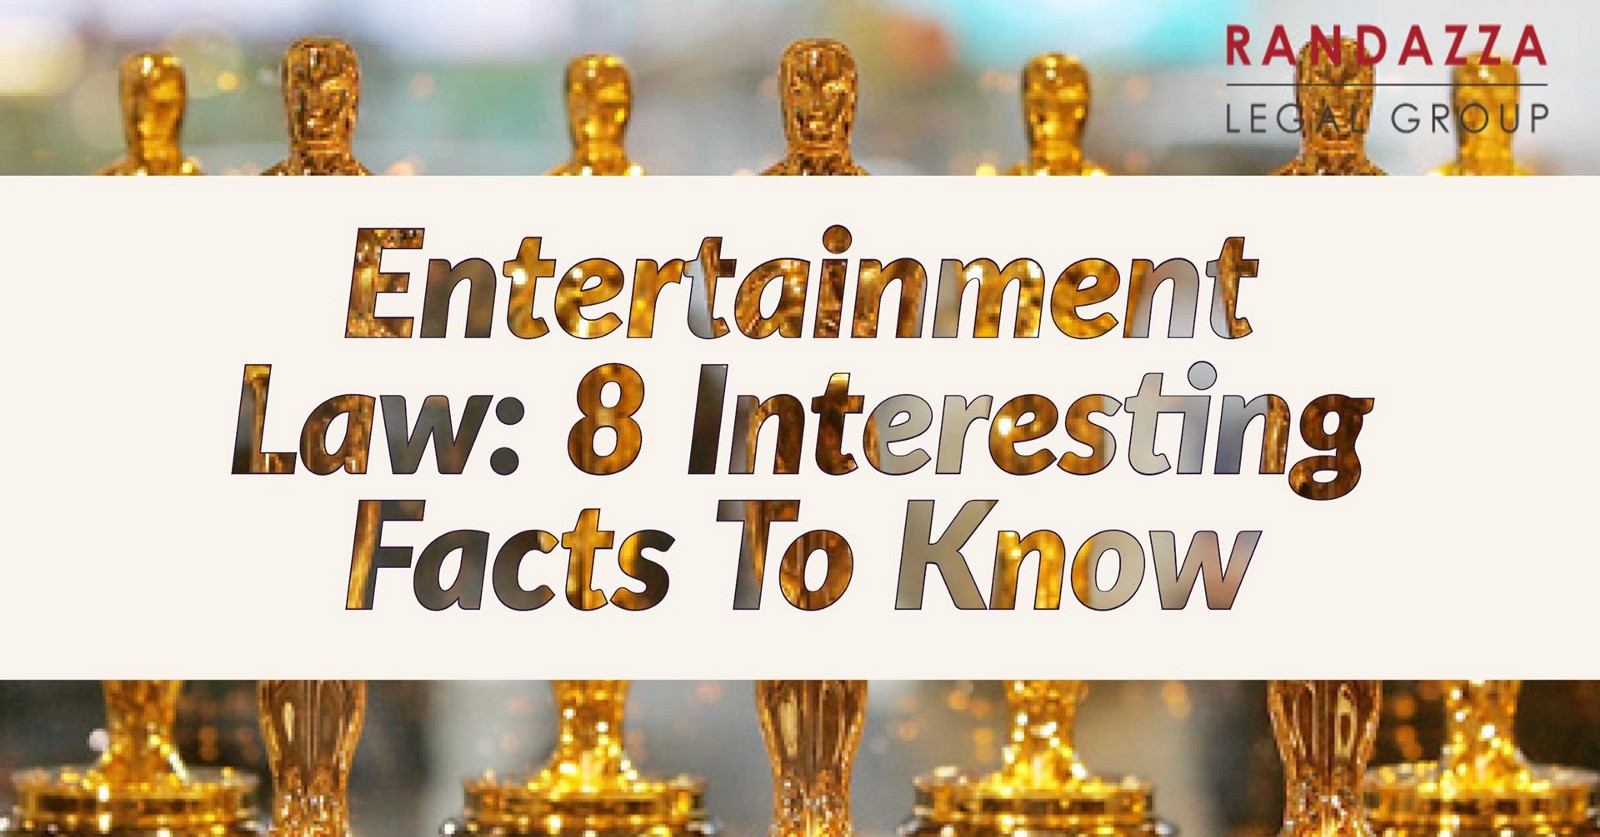 Interesting facts about everything 8